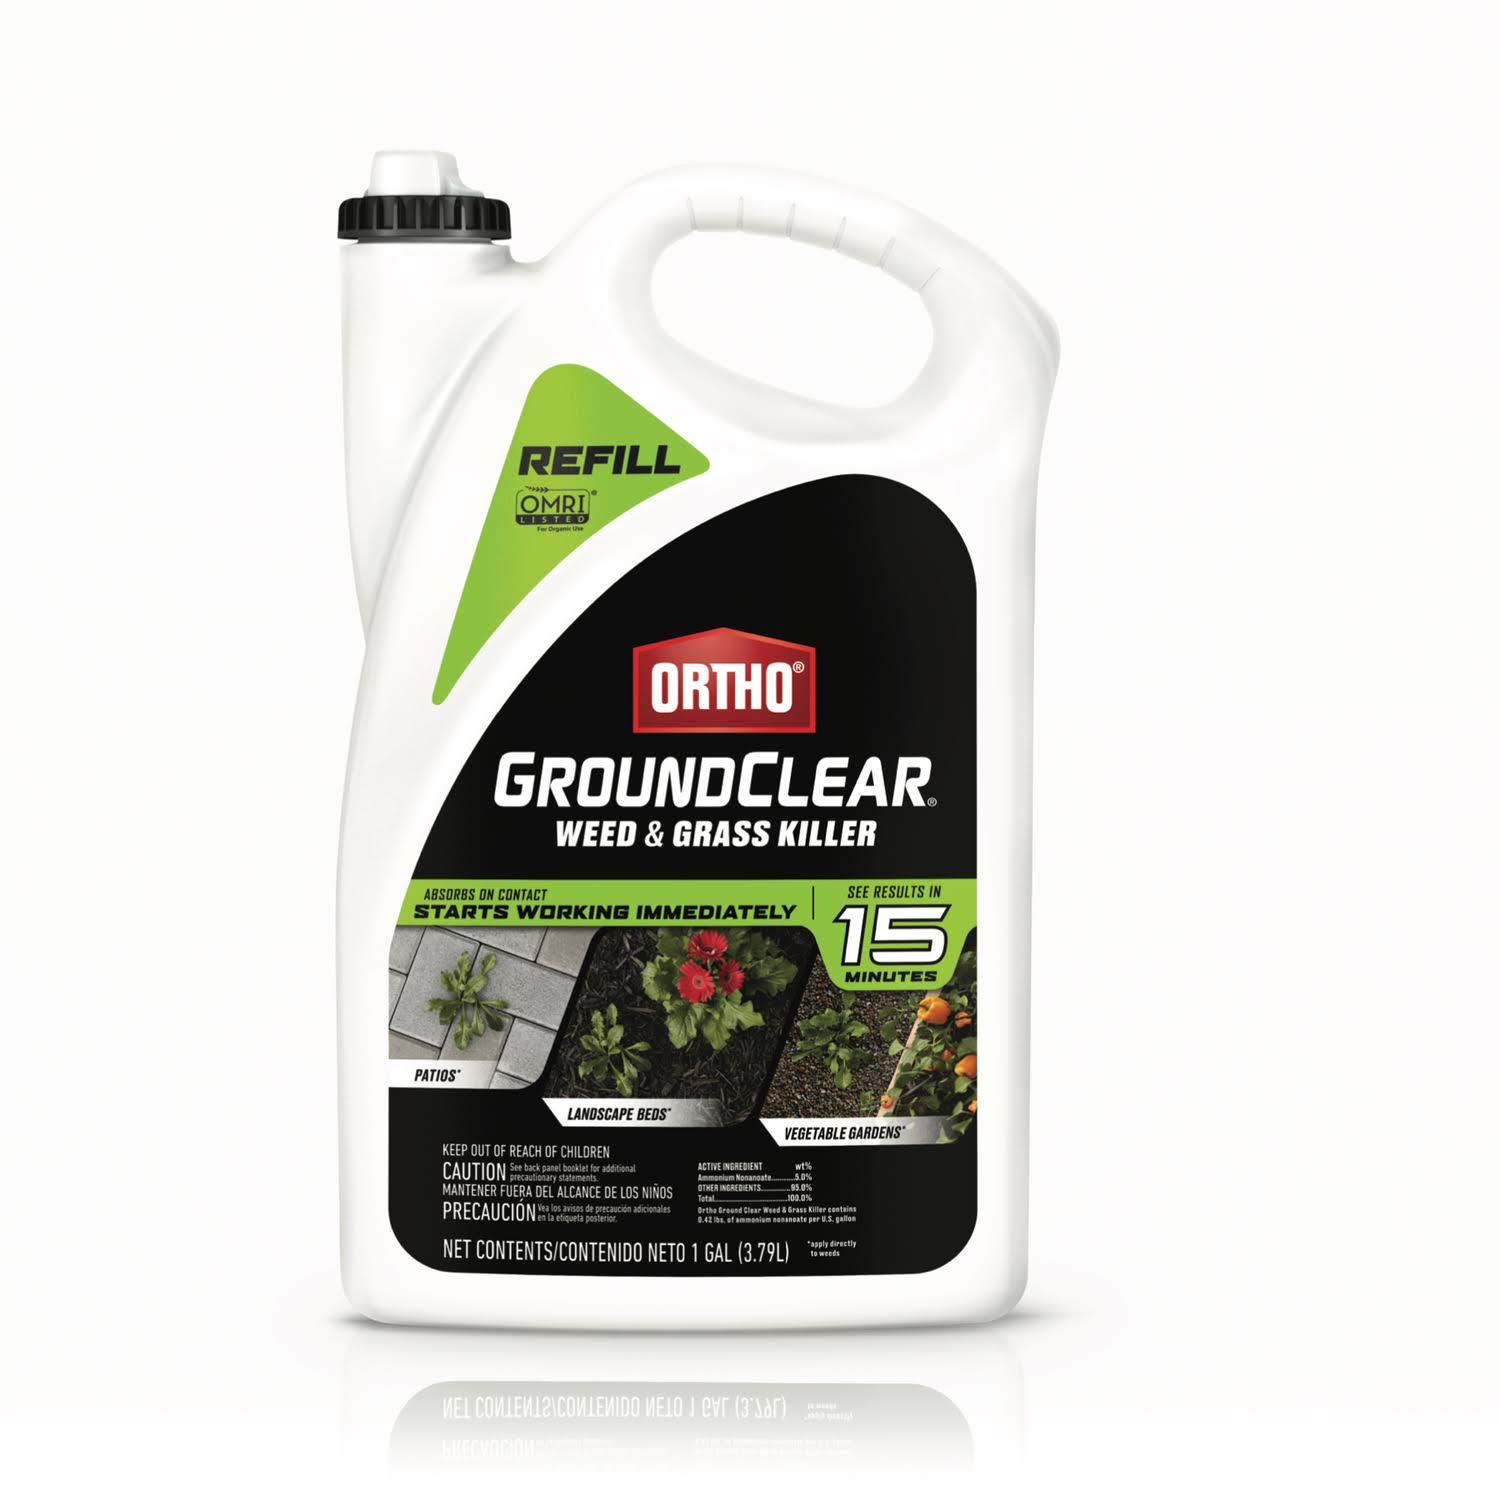 Ortho 4613504 GroundClear Weed and Grass Killer Refill, 1 Gallon